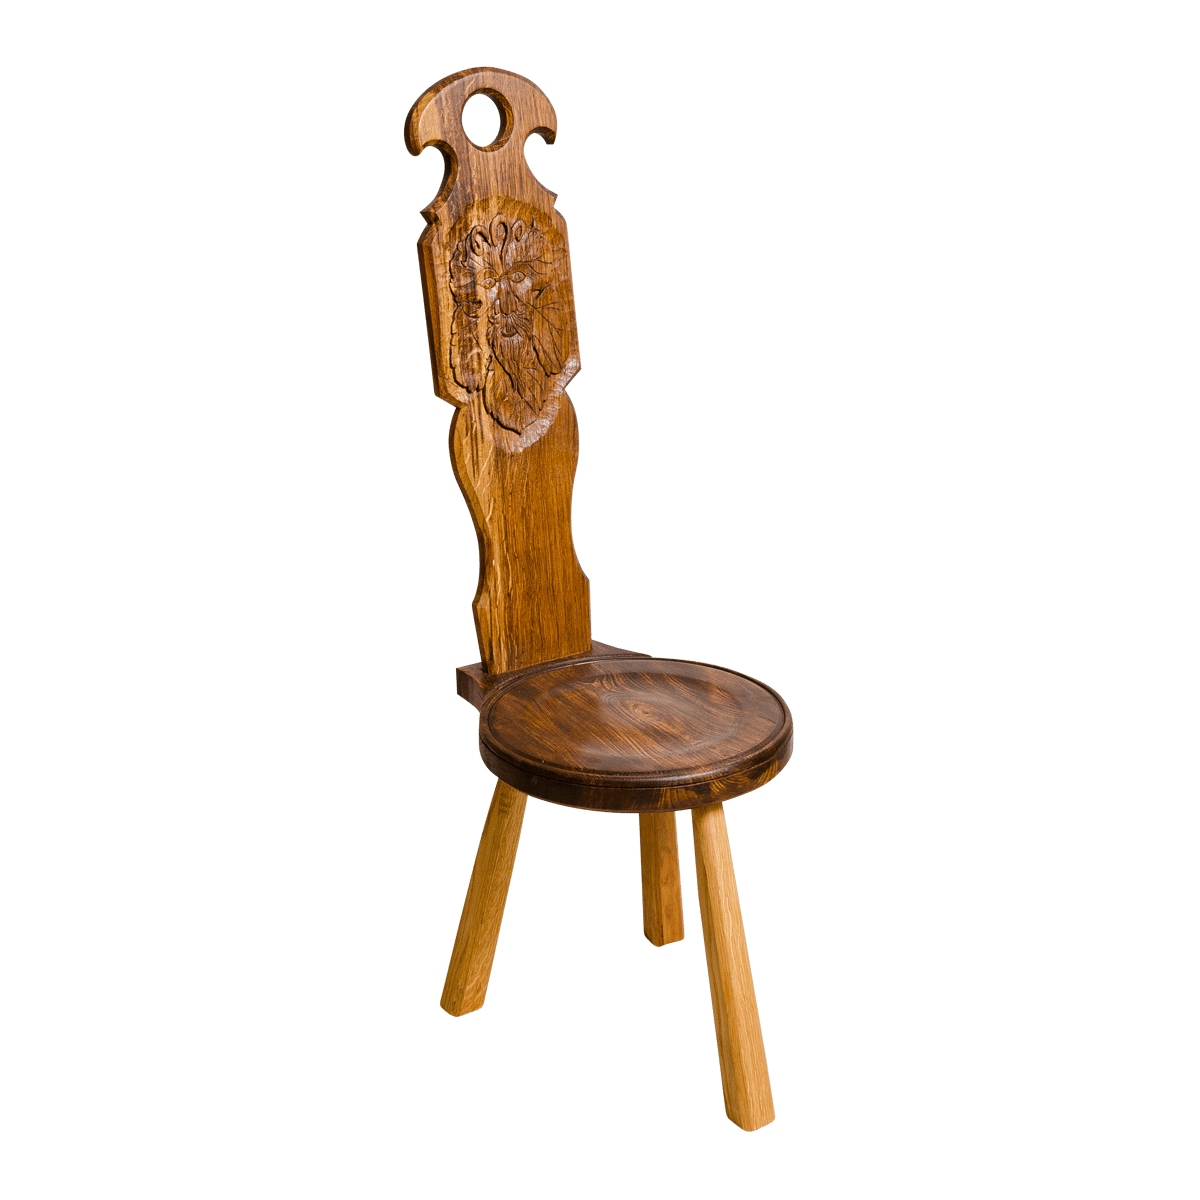 Spinning Chair Spinning Chair With Green Man Carving